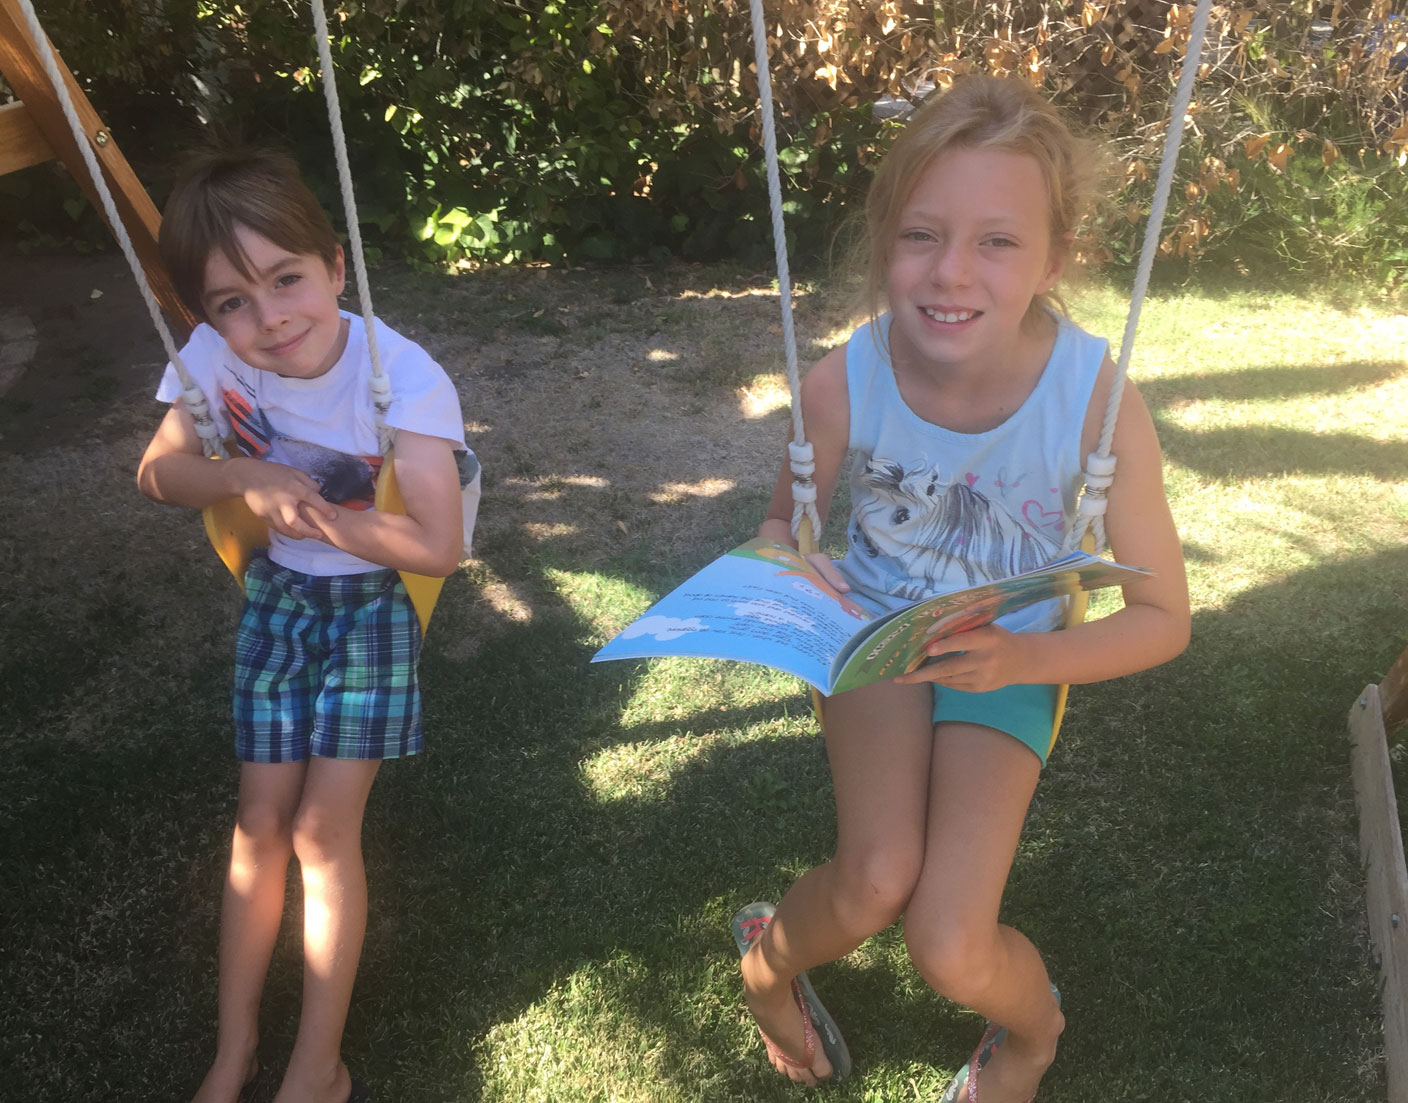 Children On Swings With Book 4 2017